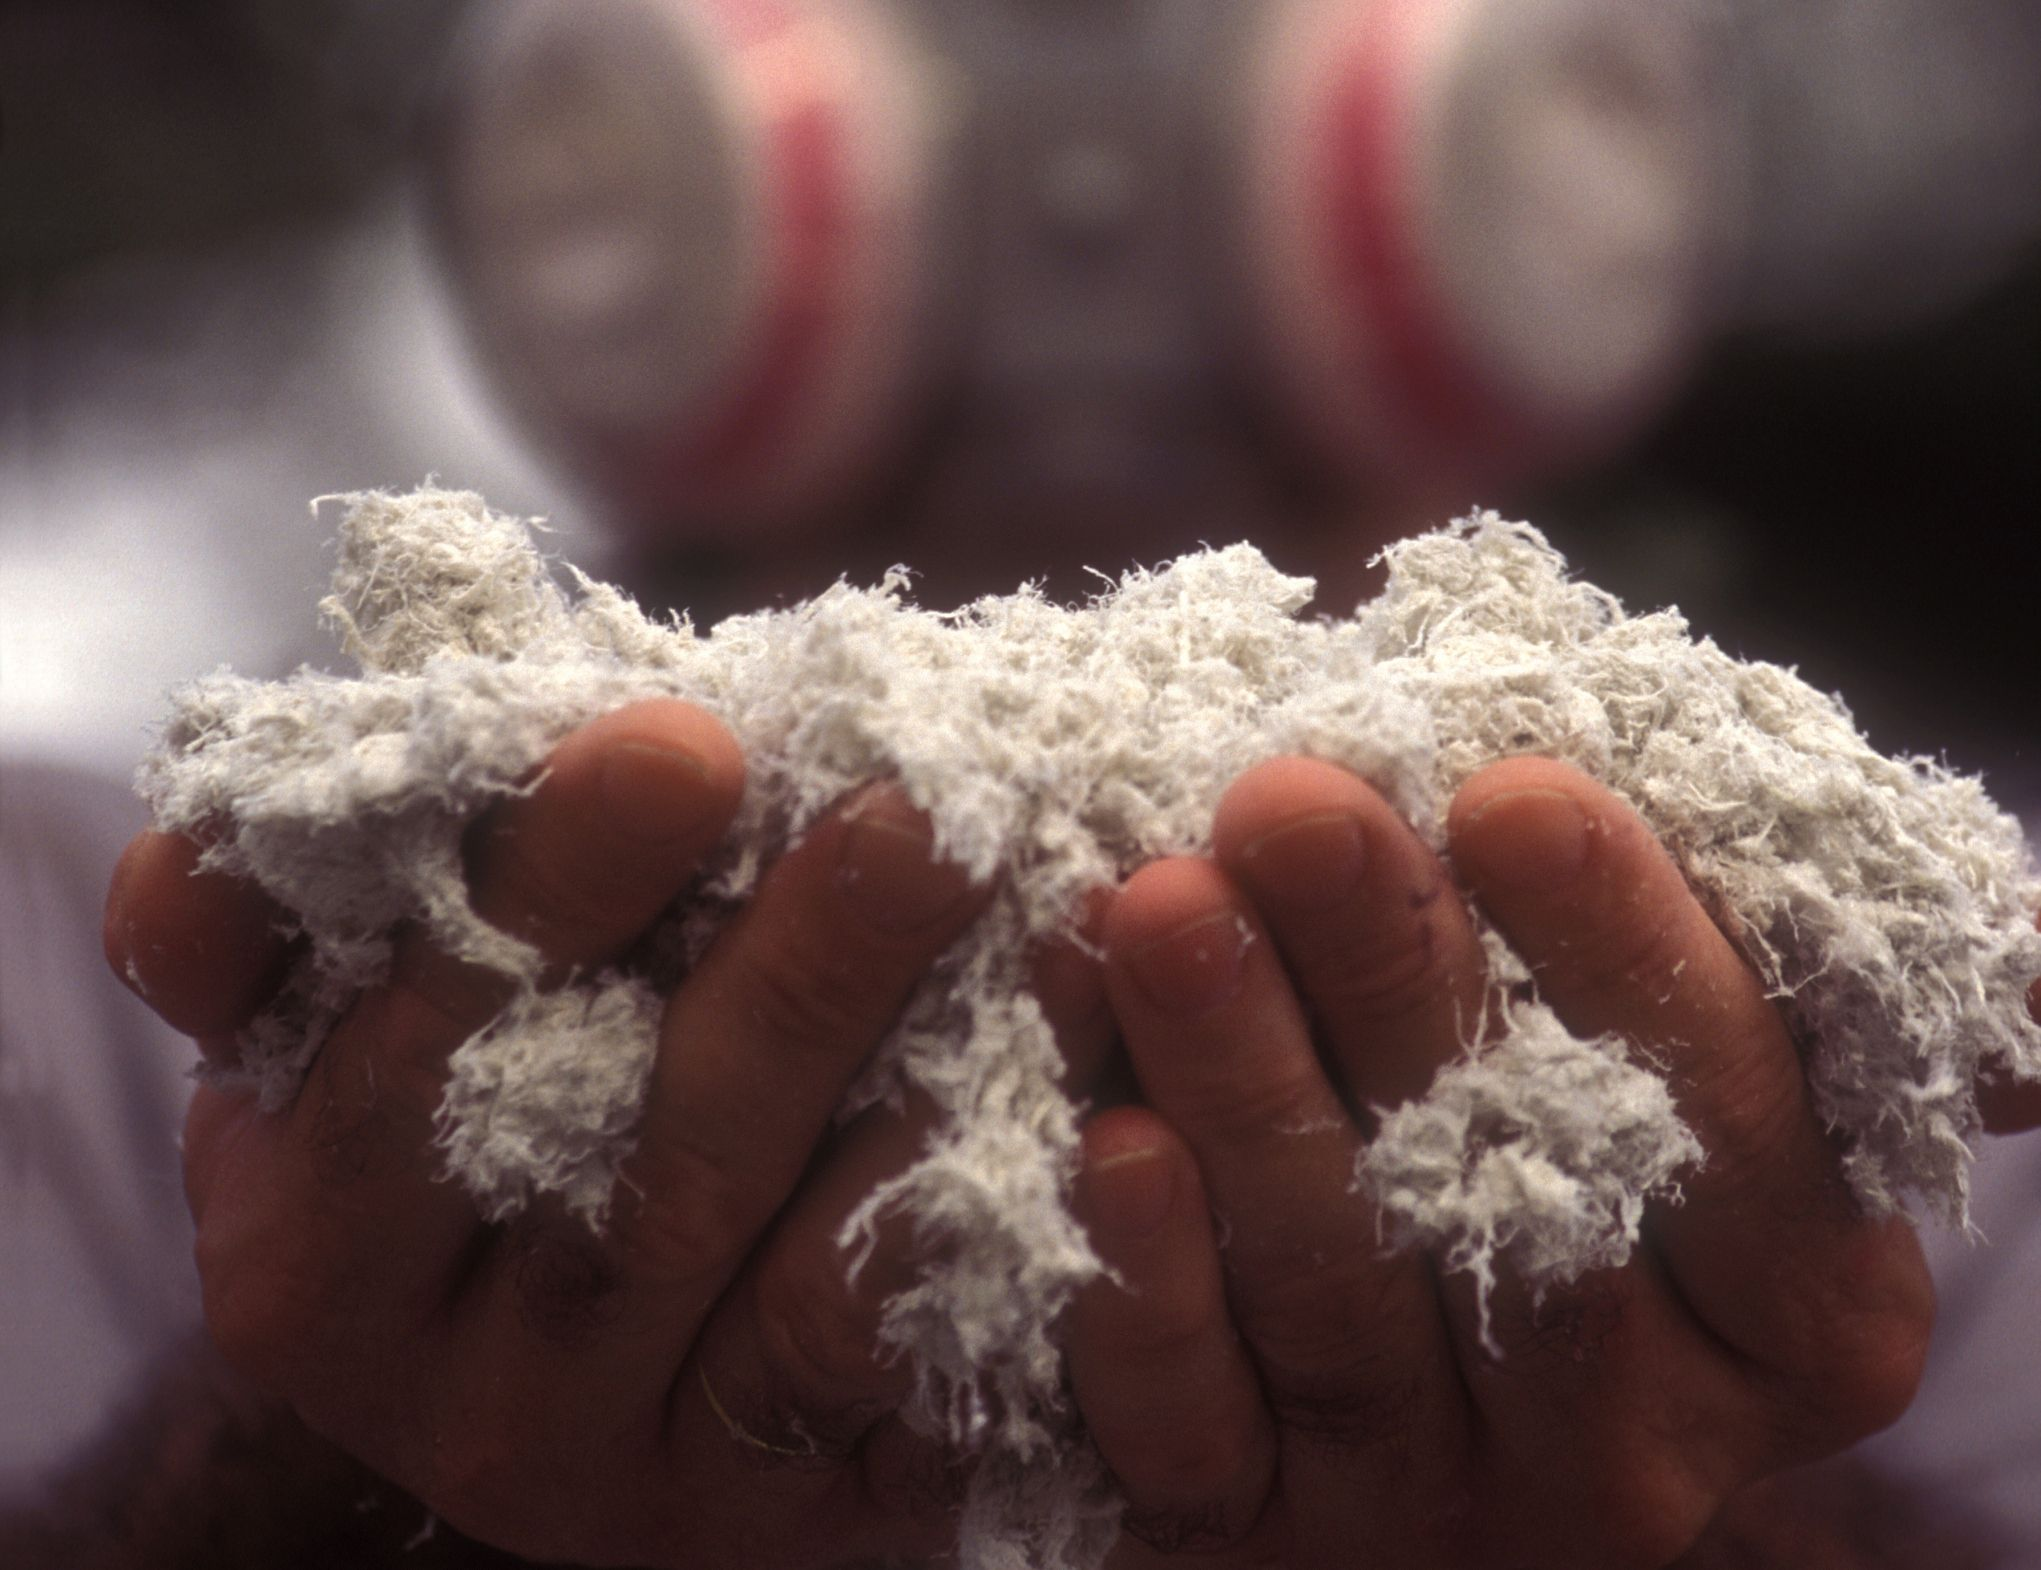 How to identify dangerous asbestos insulation how is asbestos testing done solutioingenieria